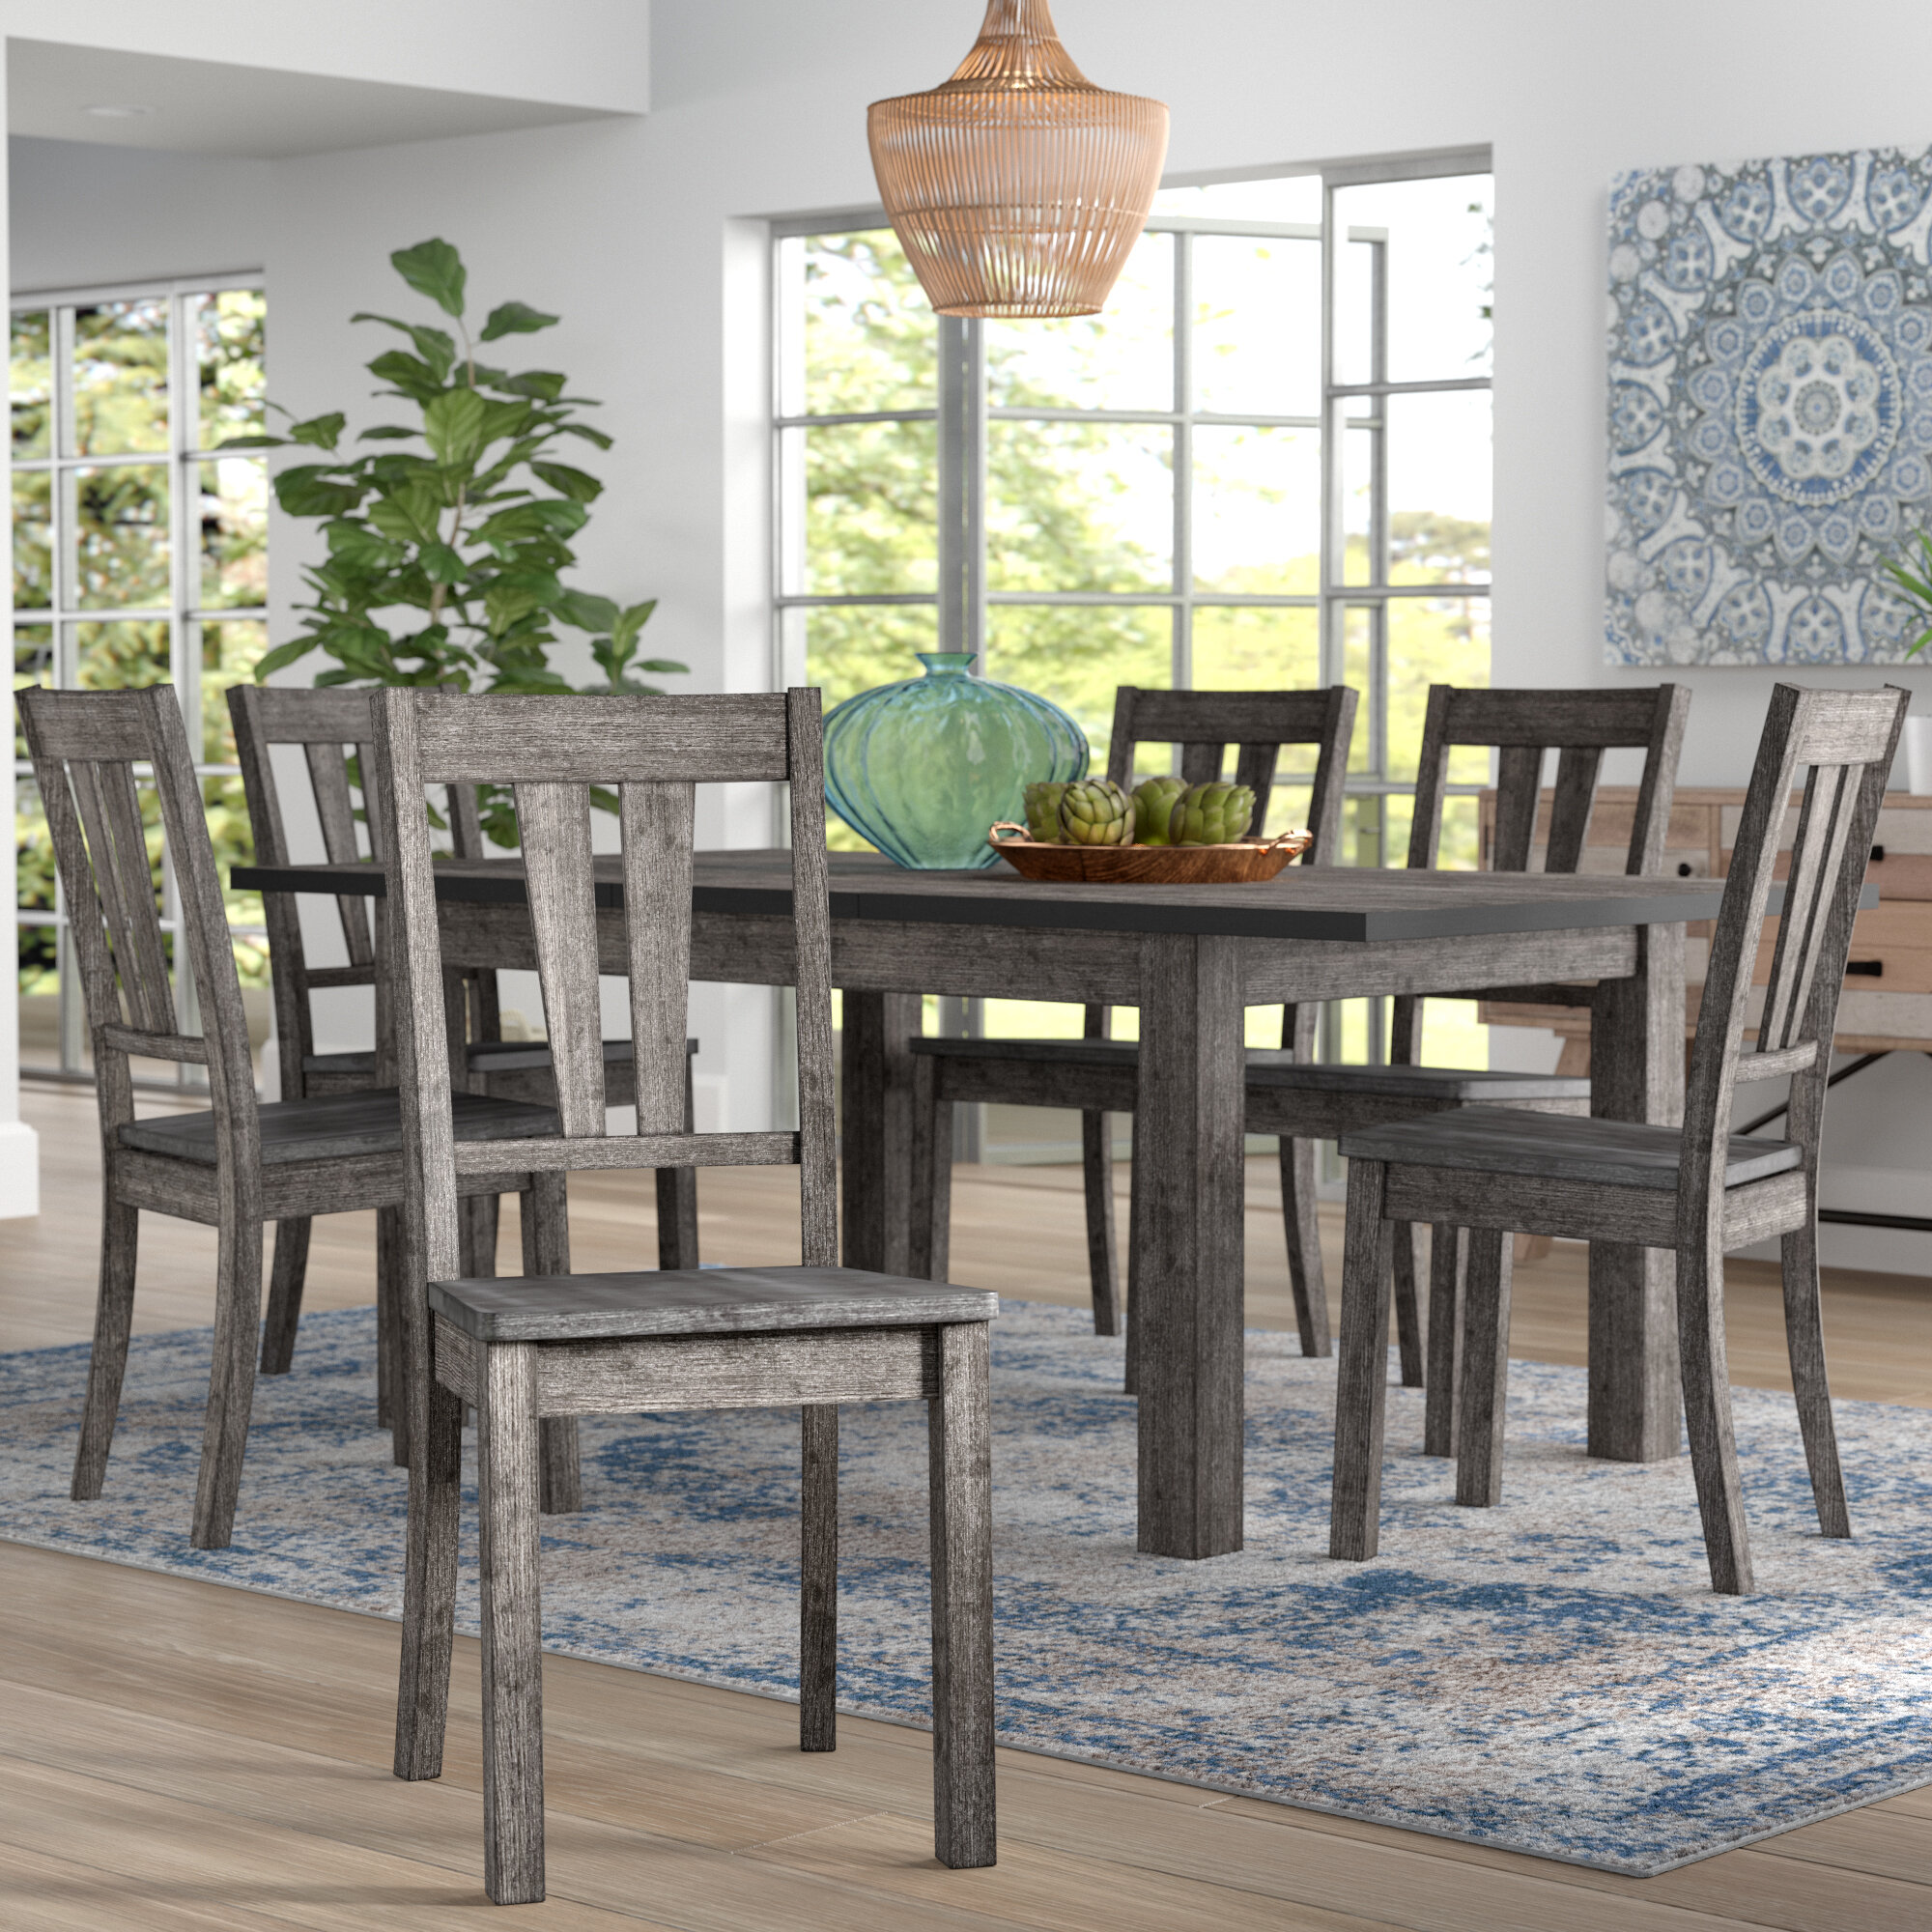 9 Piece Kitchen & Dining Room Sets You'll Love in 9   Wayfair